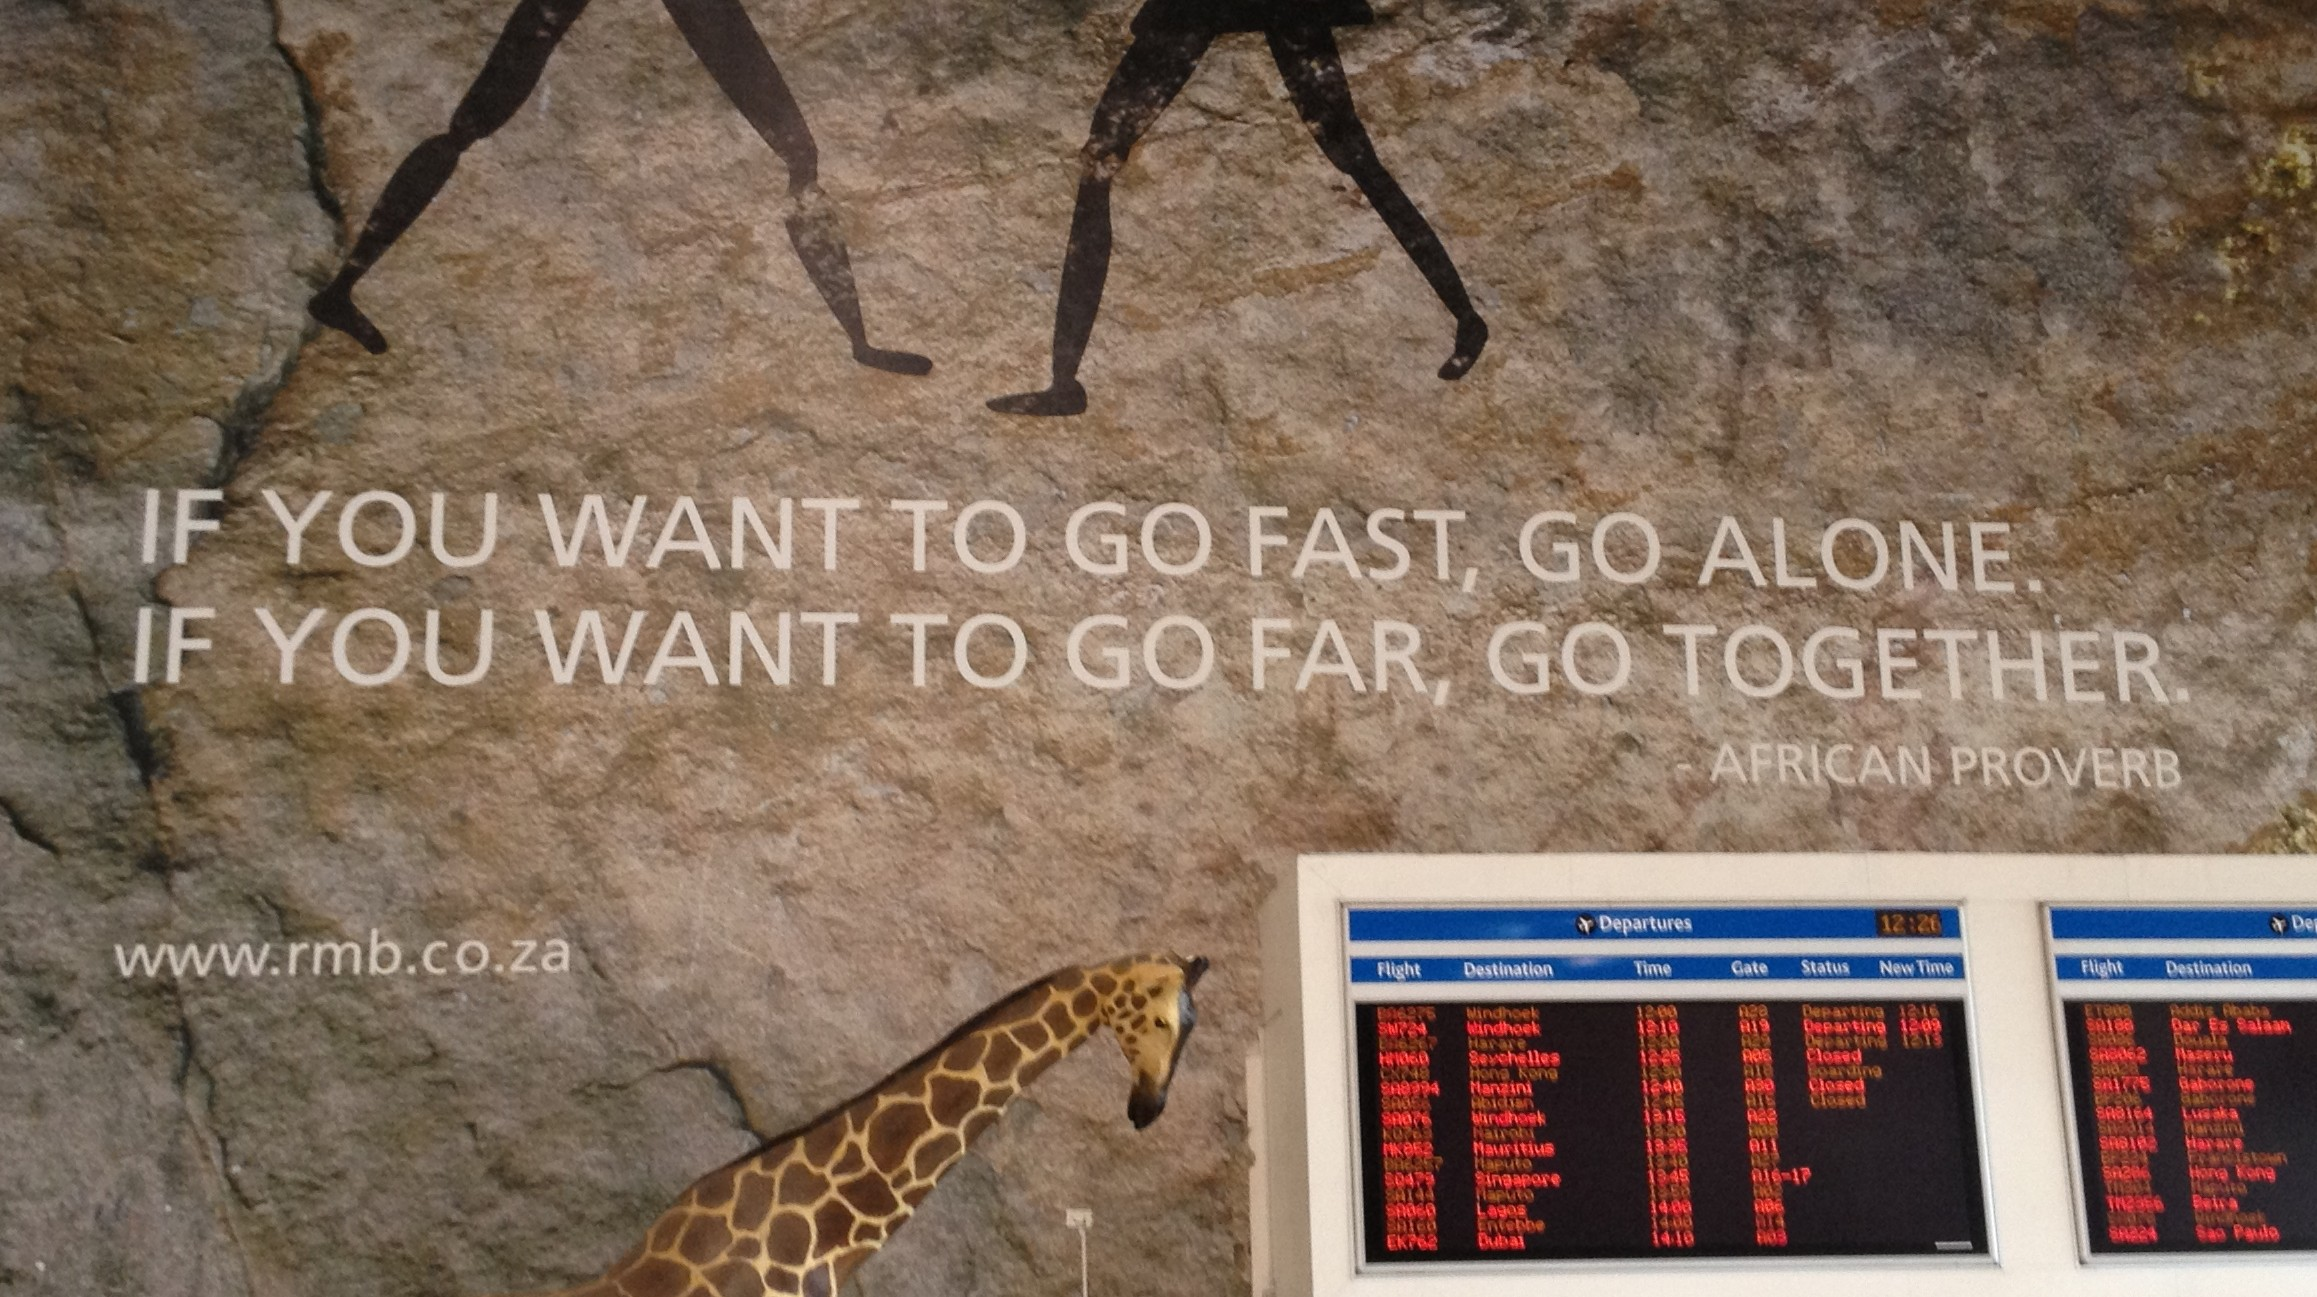 African Proverb in Johannesburg Airport